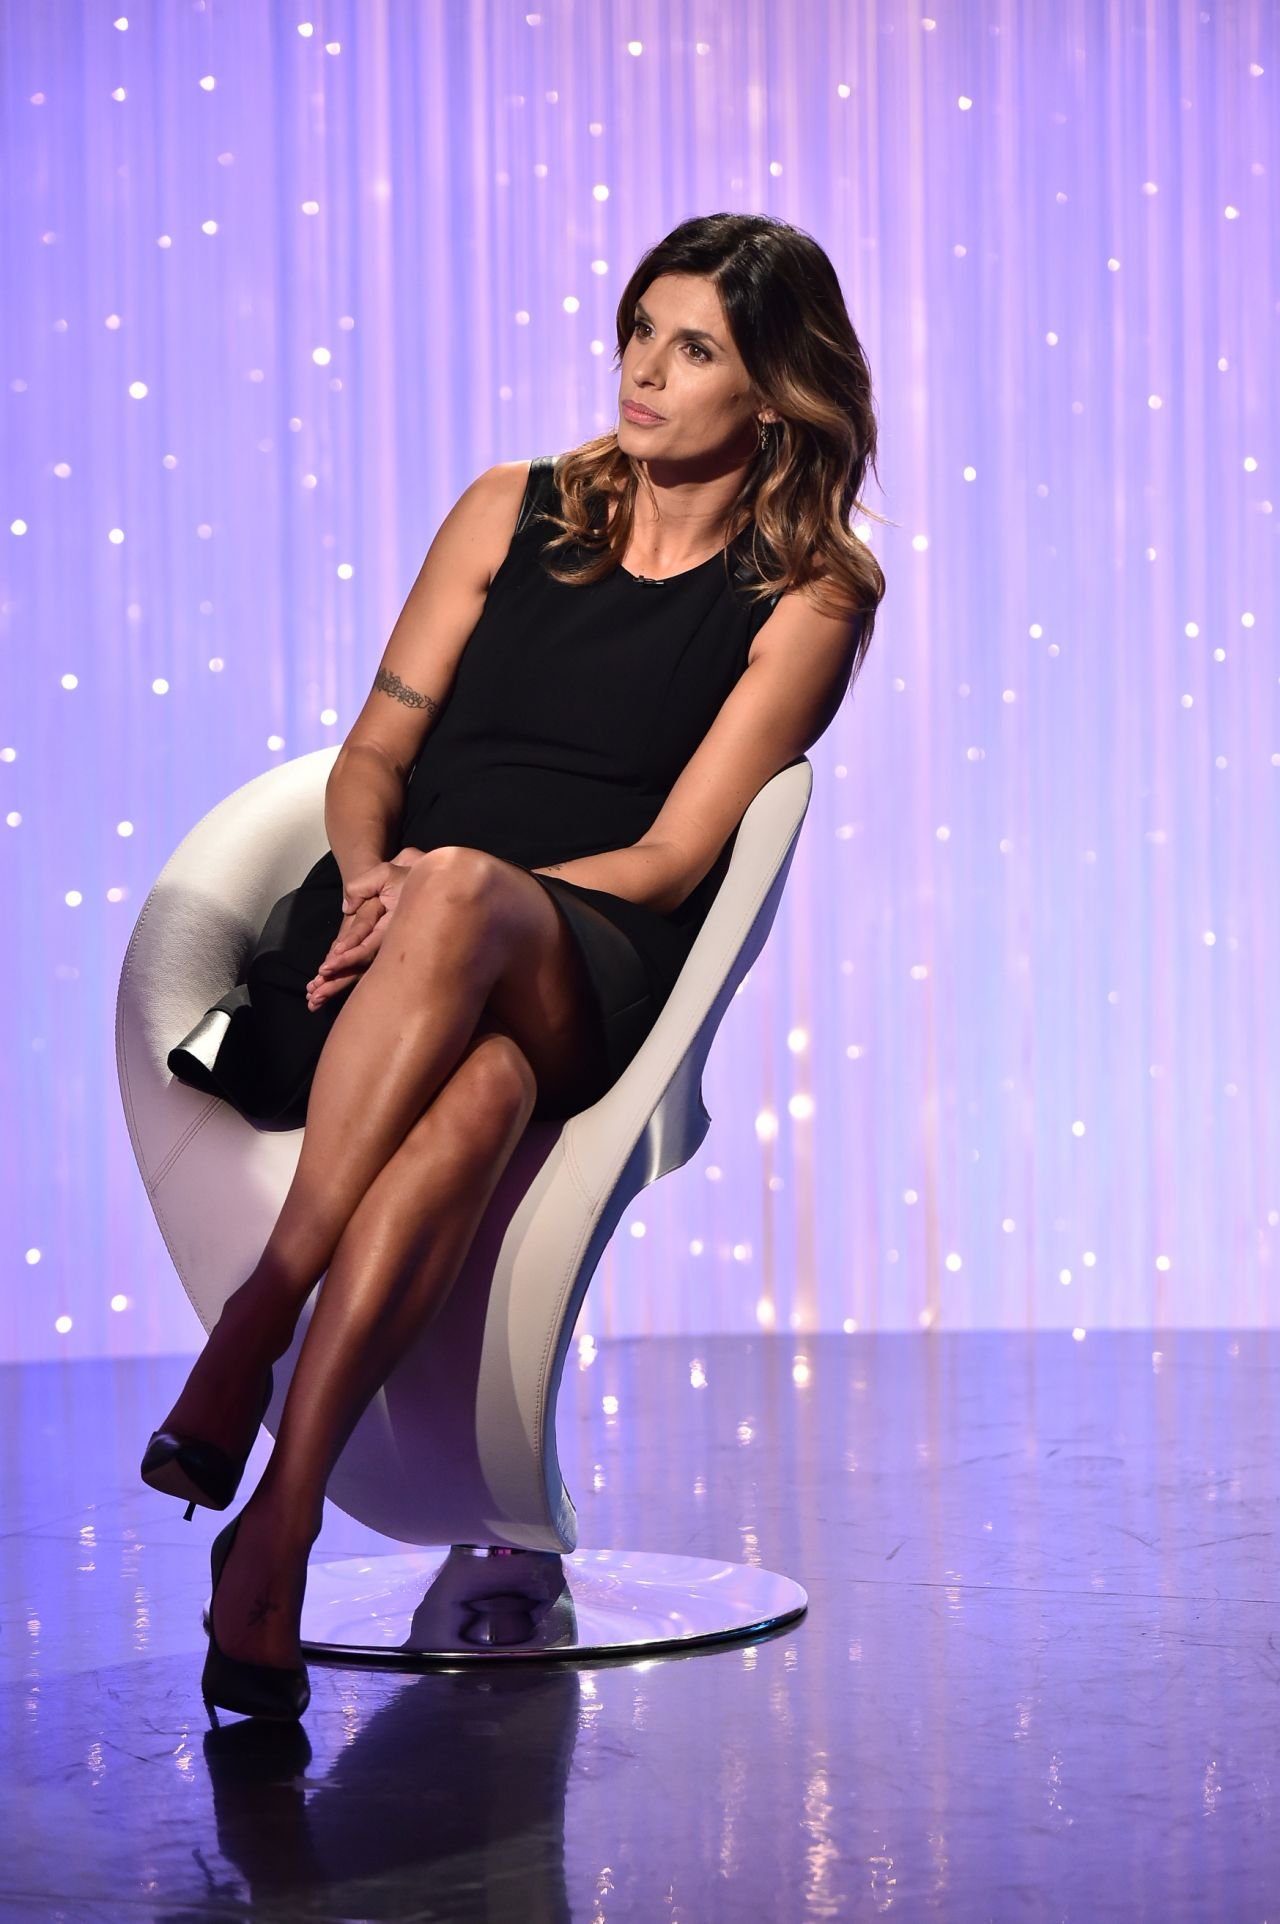 Elisabetta Canalis Appears on the TV Show Verissimo in